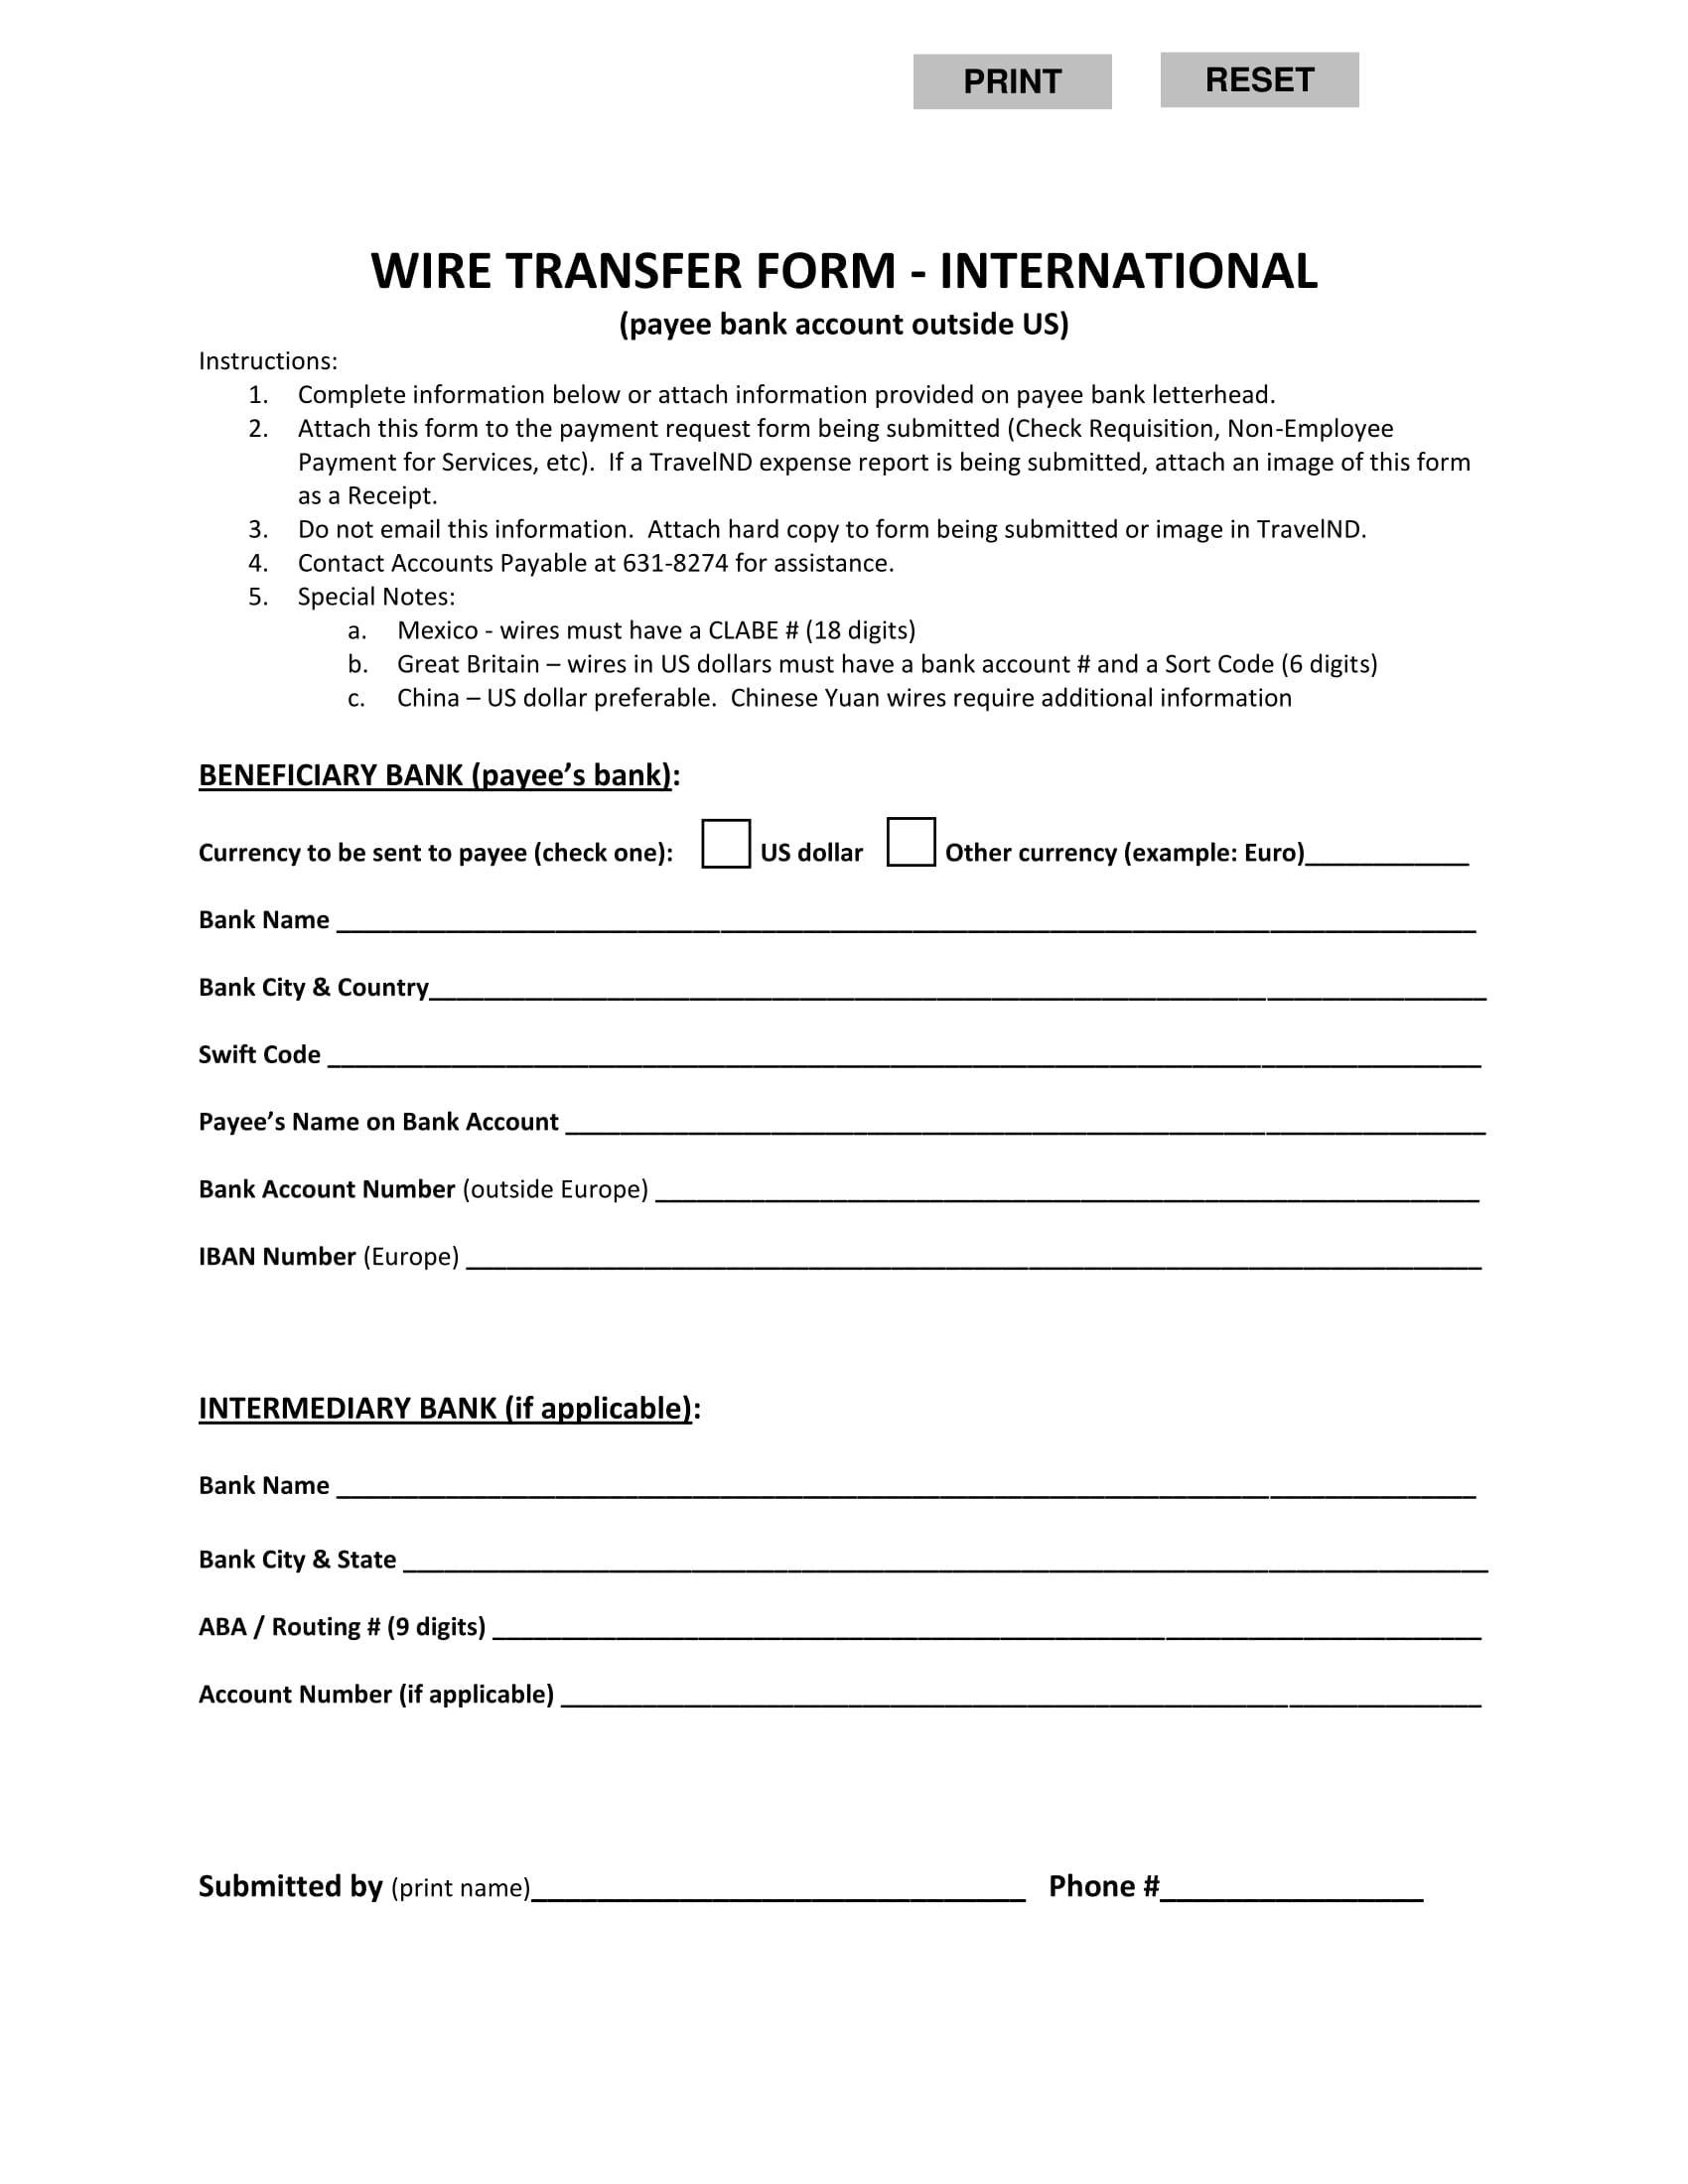 Attractive Wire Transfer Form Template Illustration - Resume Ideas ...